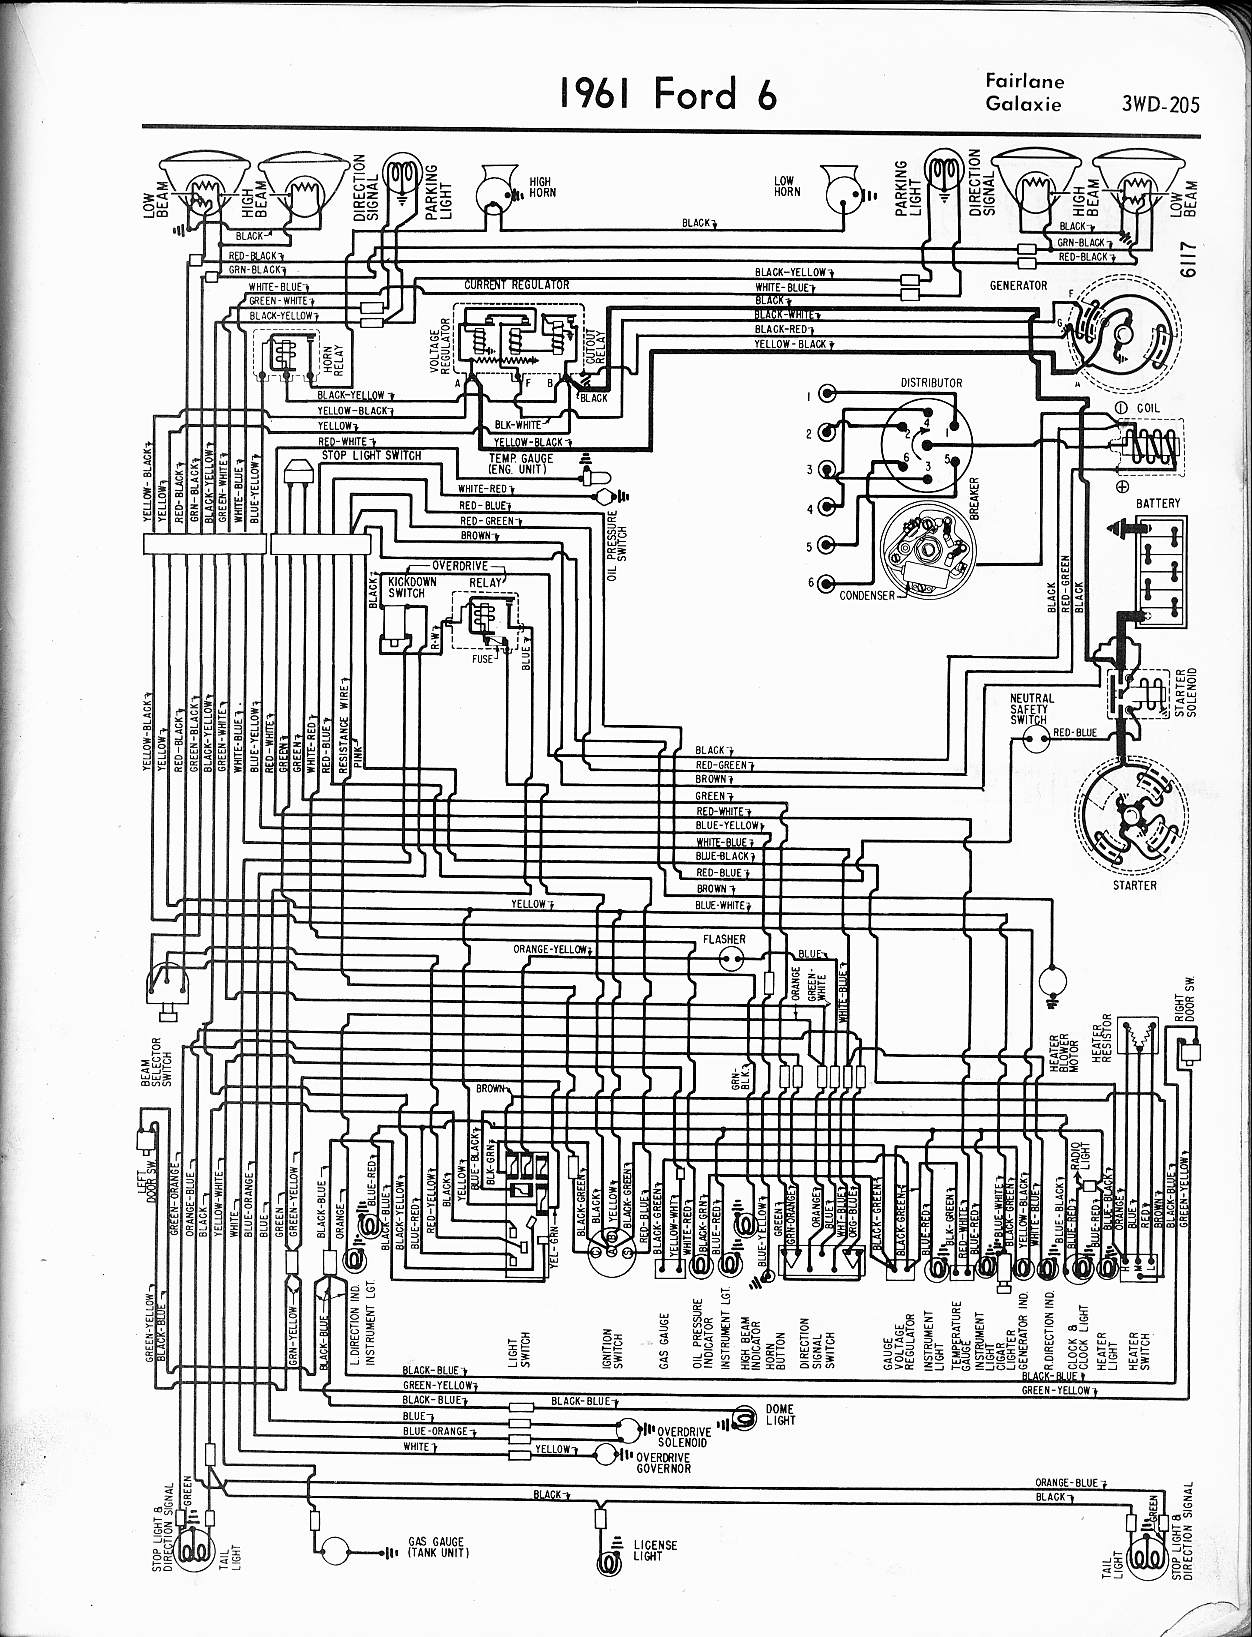 57 65 ford wiring diagrams rh oldcarmanualproject com Ford Heater Control Valve Replacement Ford F-150 Fuse Box Diagram